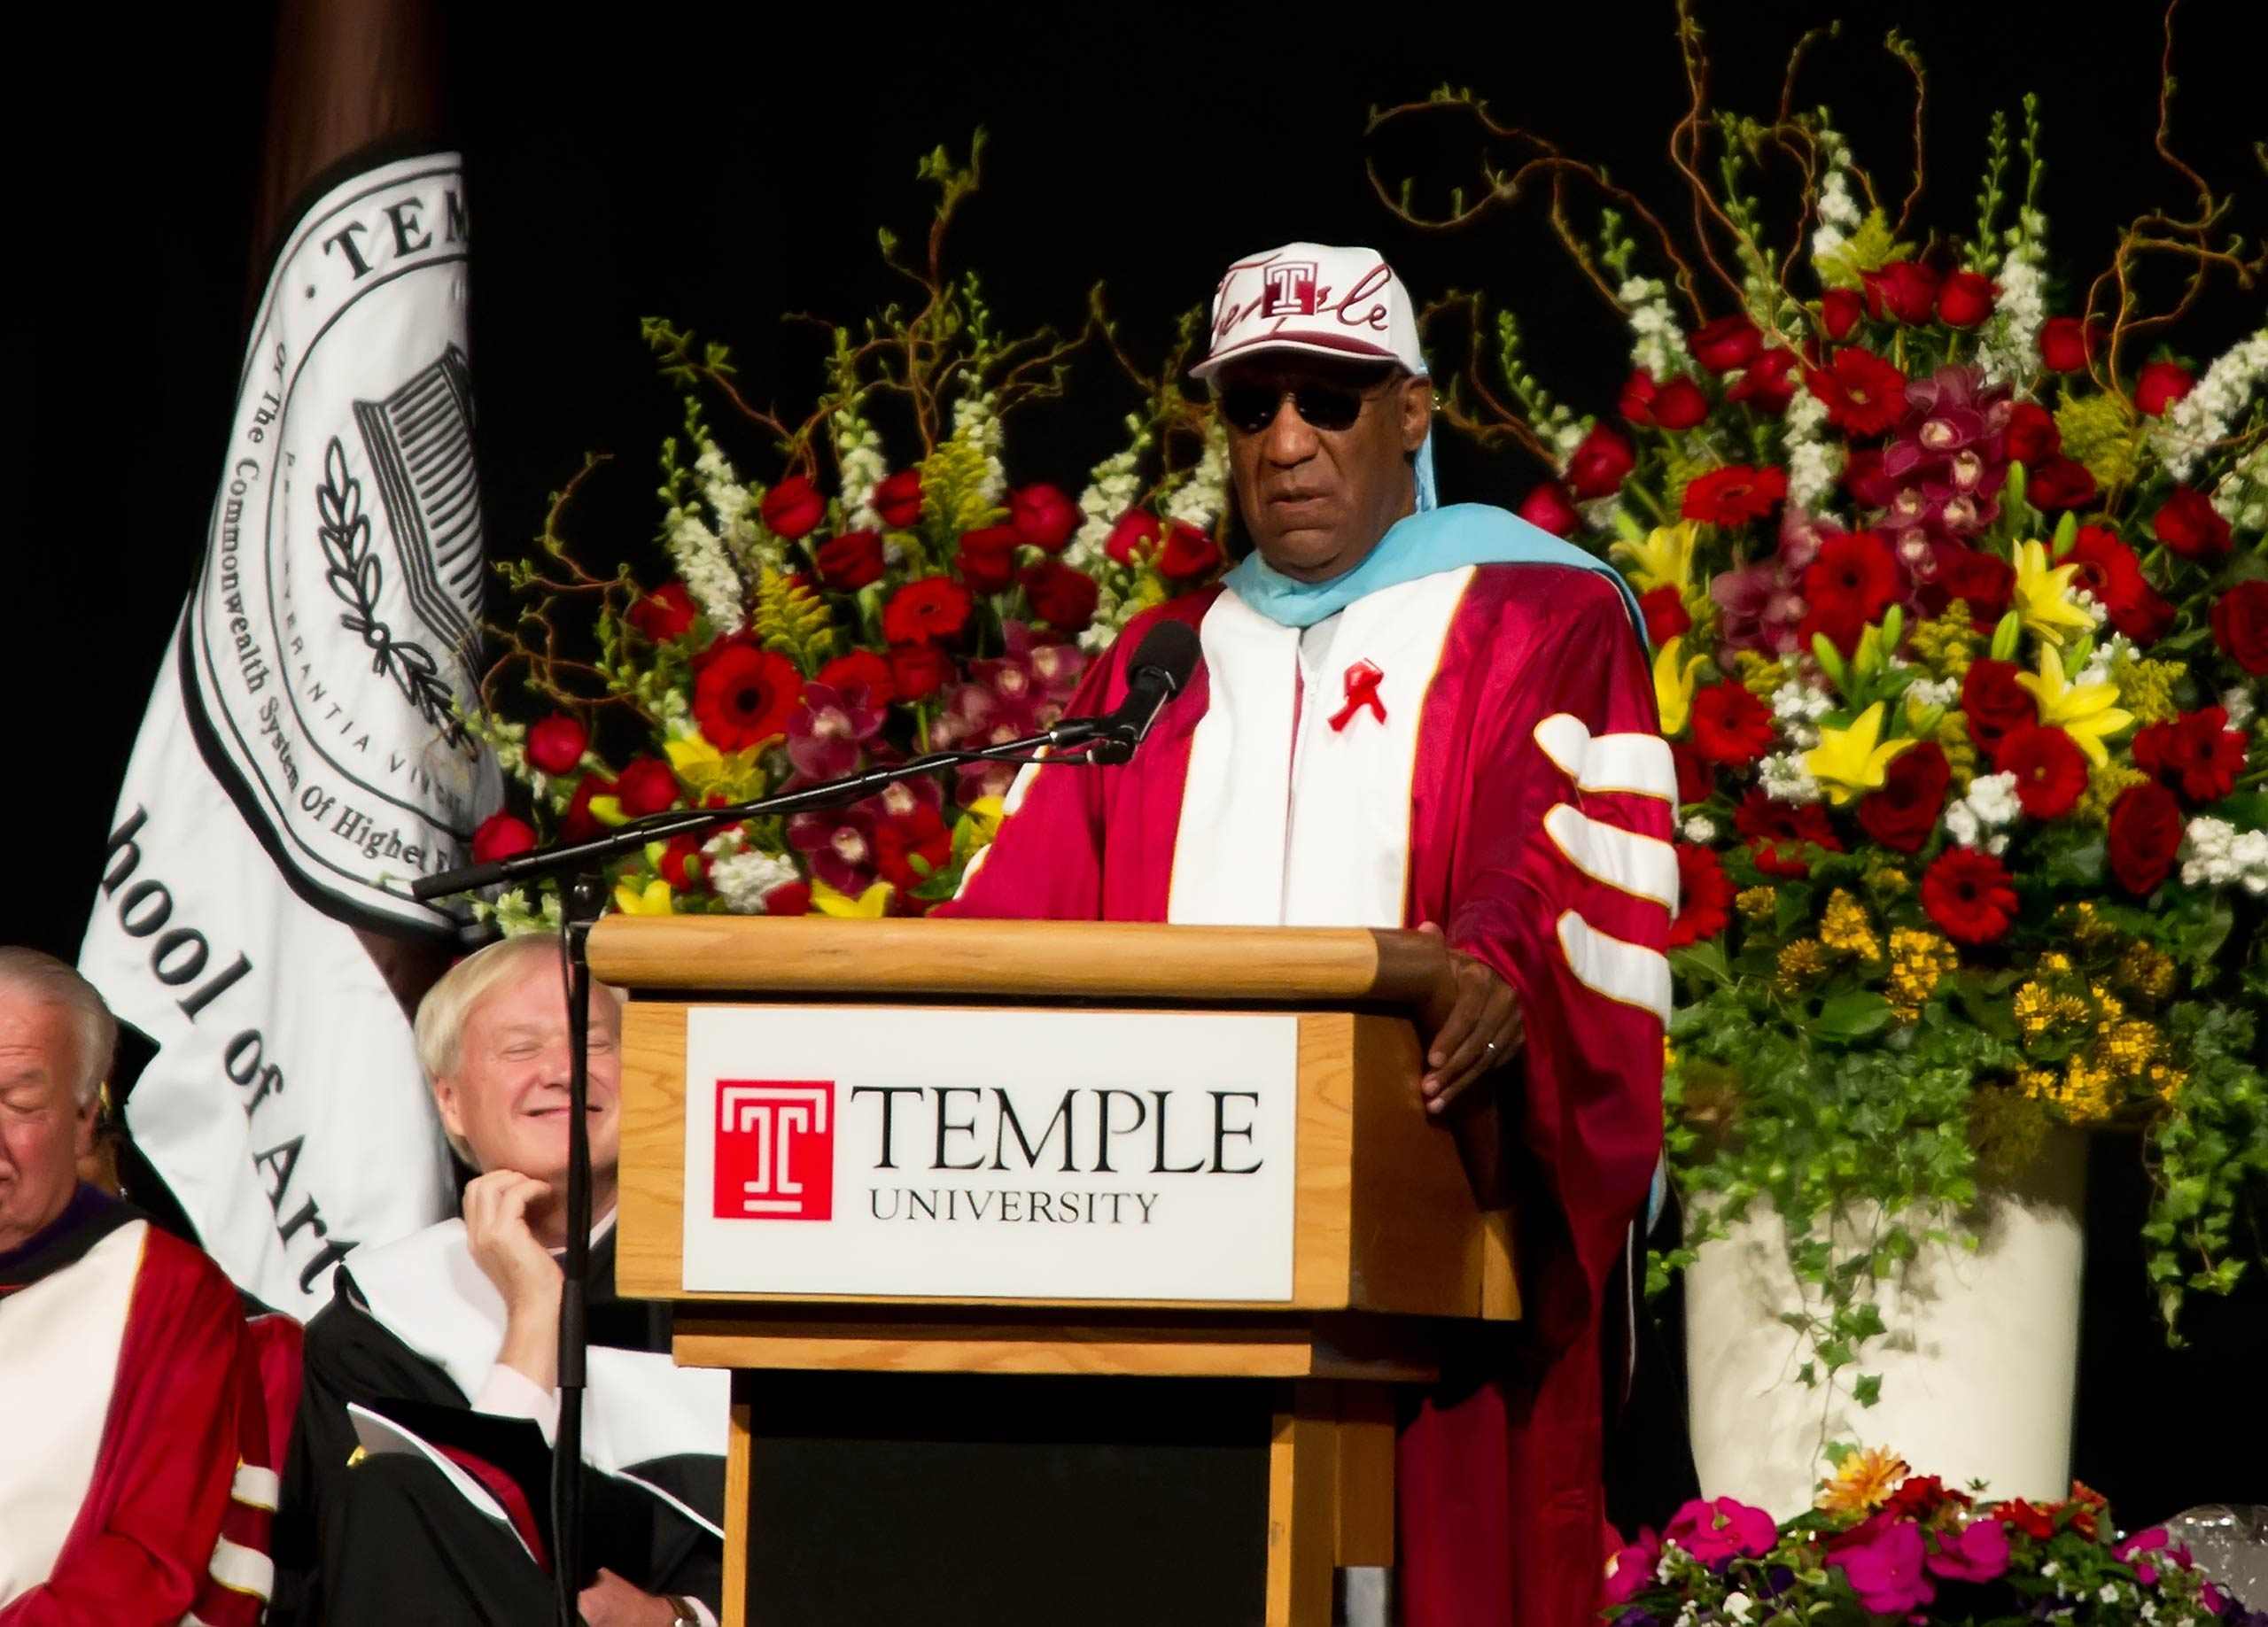 Bill Cosby attends the 2011 Temple University Commencement at the Liacouras Center in 2011 in Philadelphia, Pa.